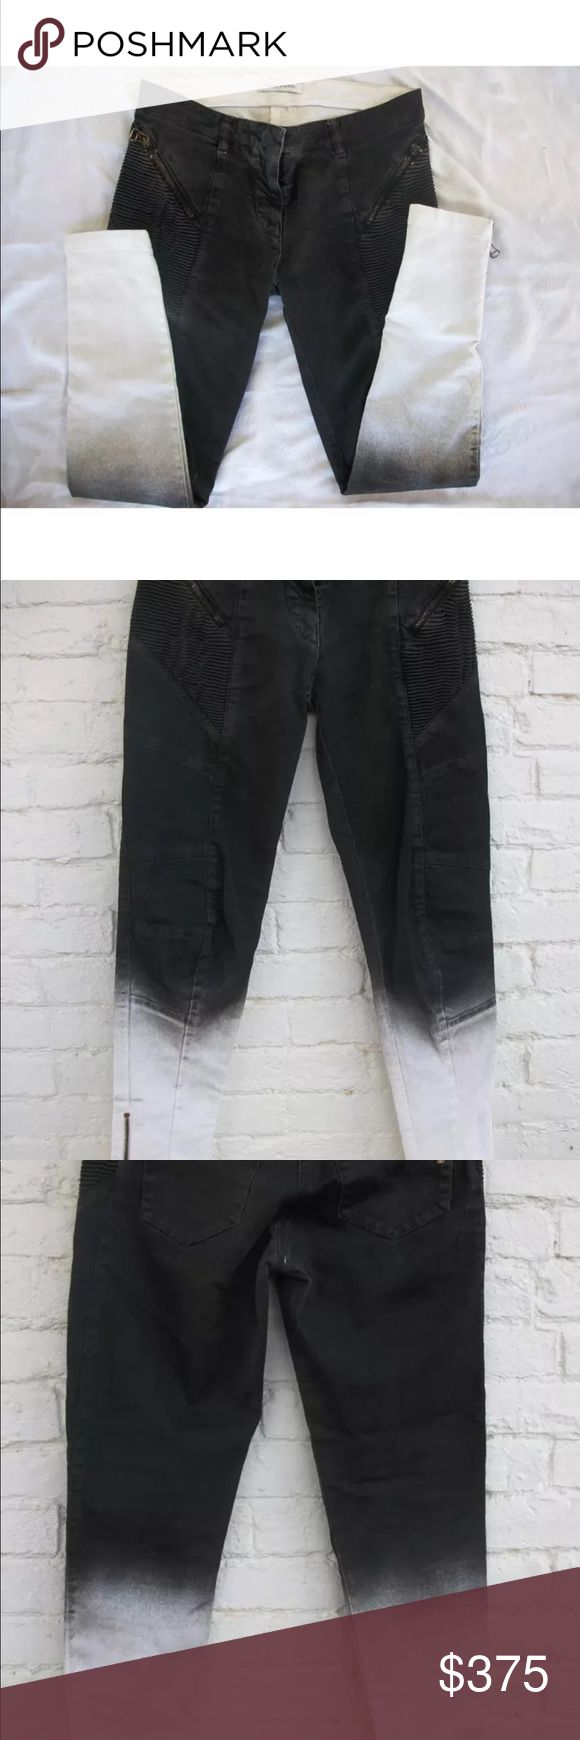 Pierre balmain jeans size 42  black white Balmain Pierre size 42 please look at picture I have measurements these are like new tried on but never worn Pierre Balmain Pants Skinny